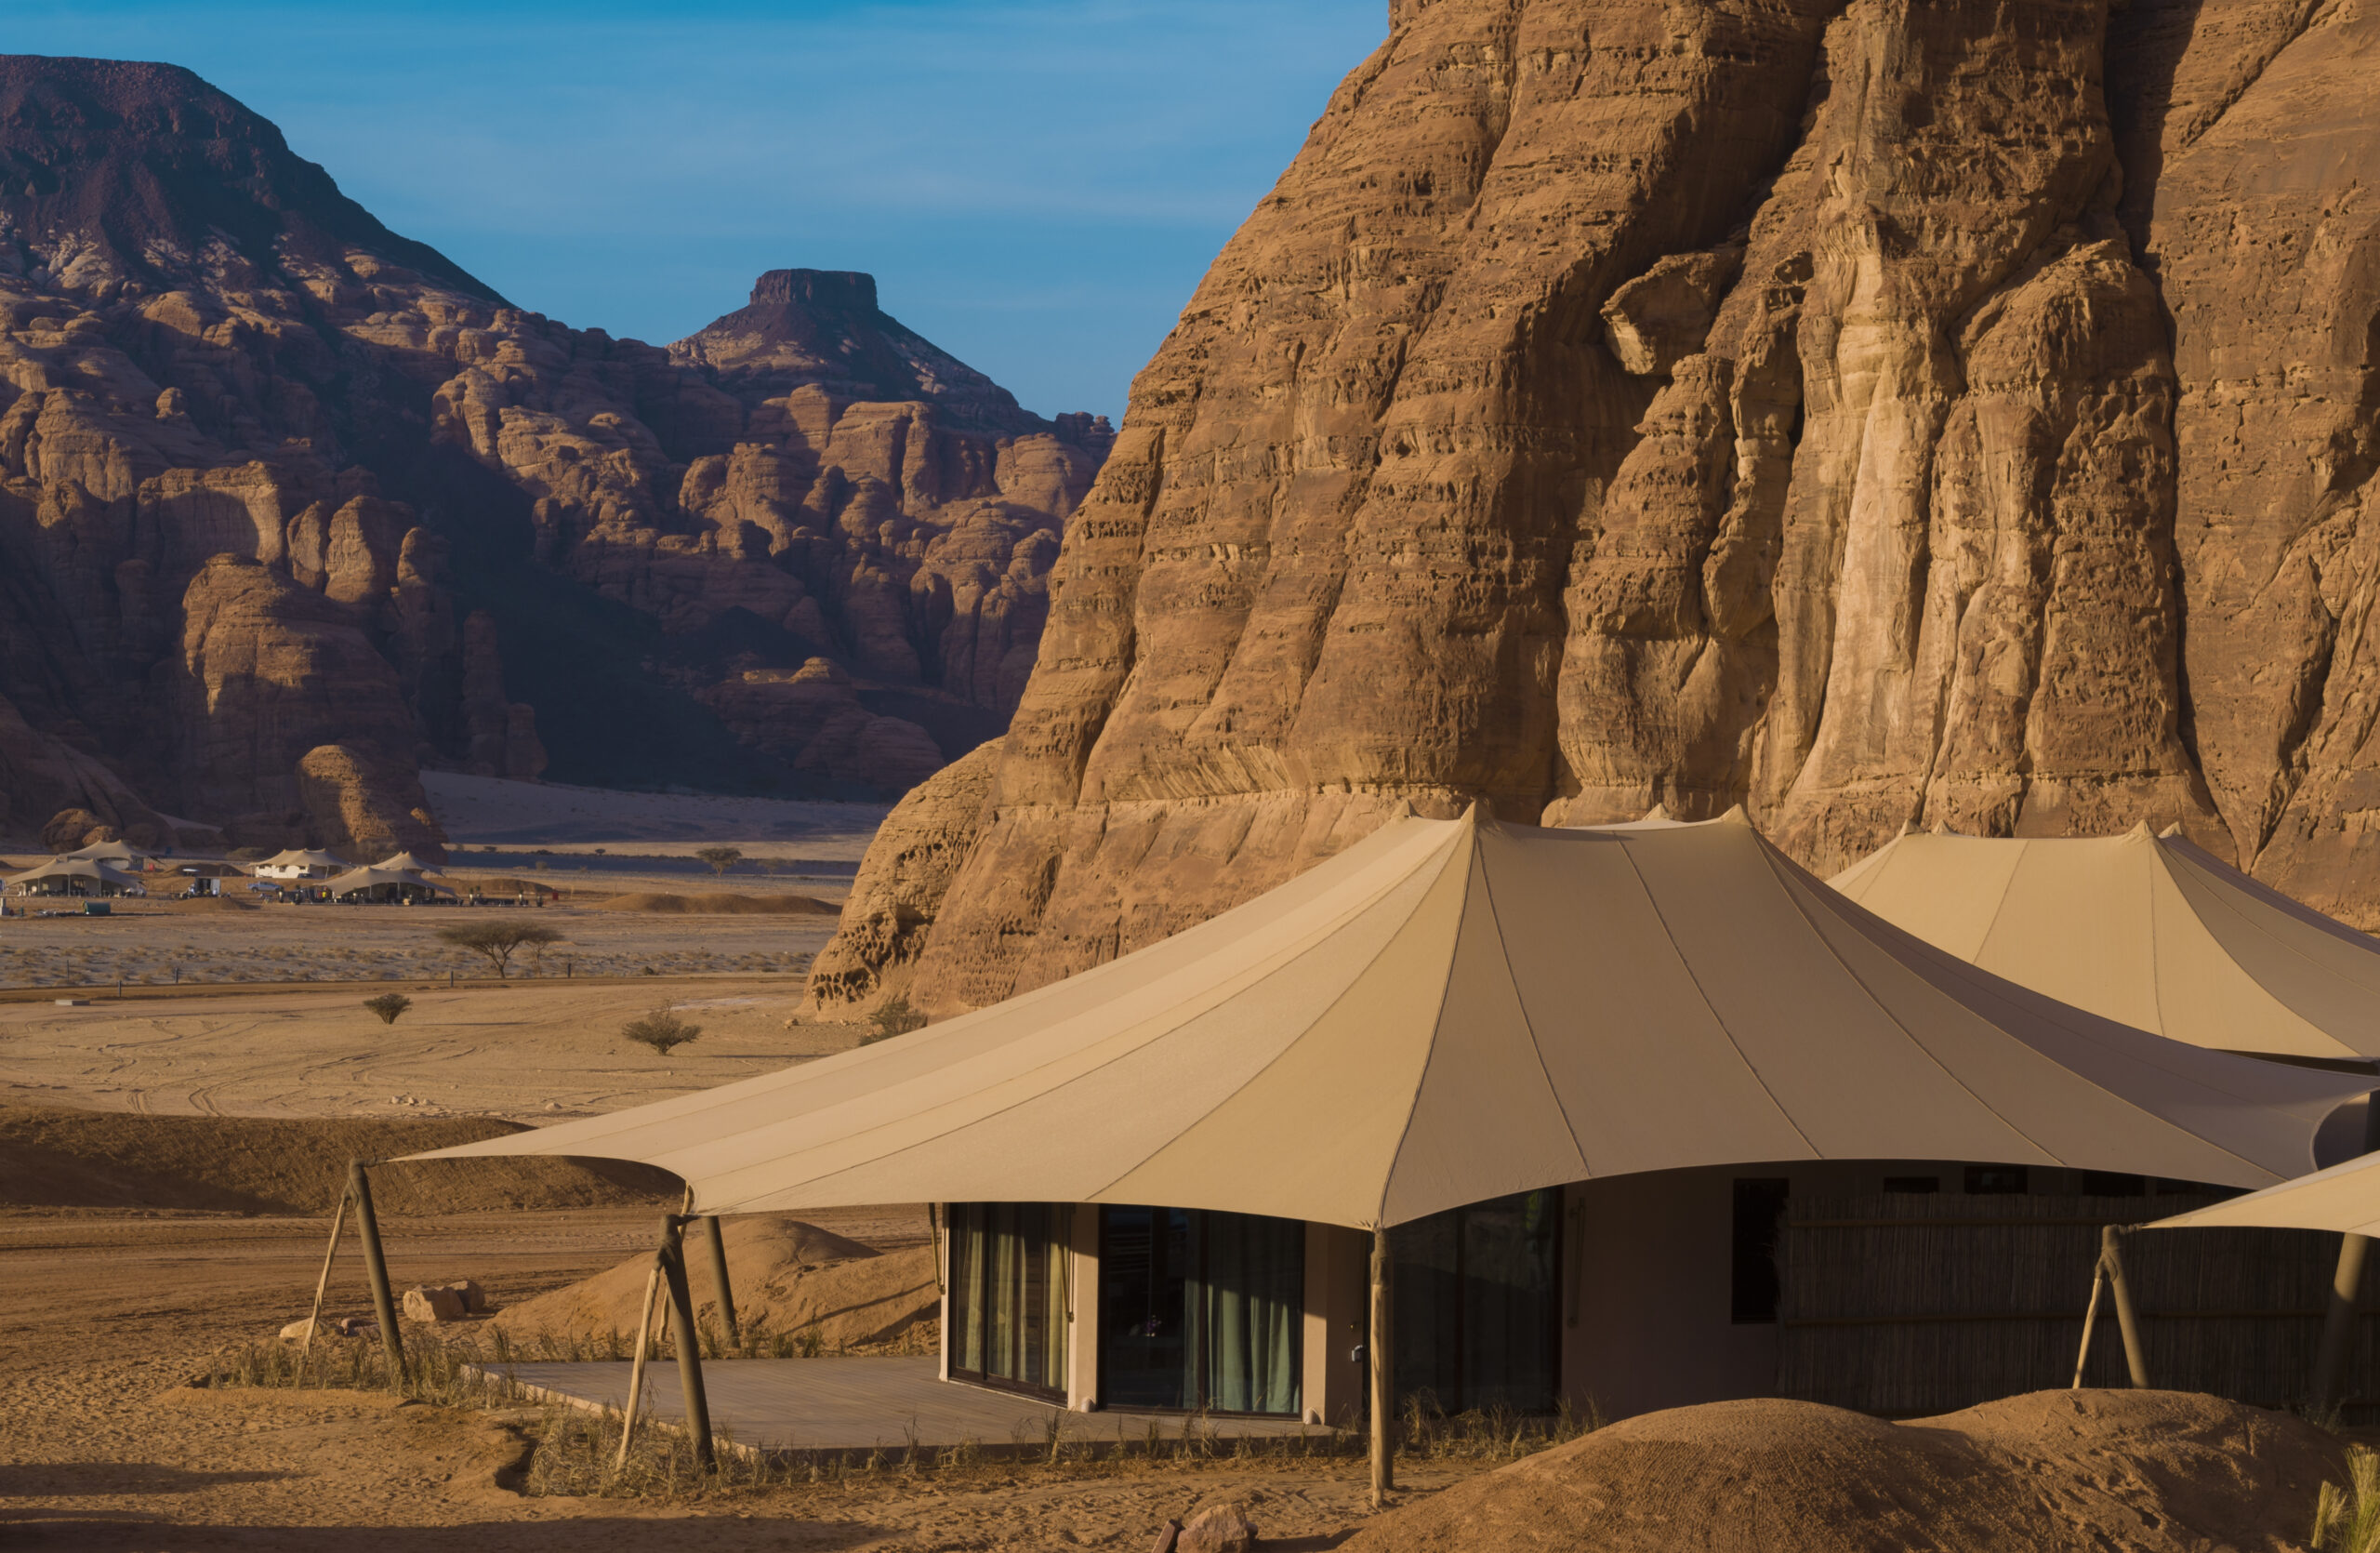 Glamping in wilds of AlUla